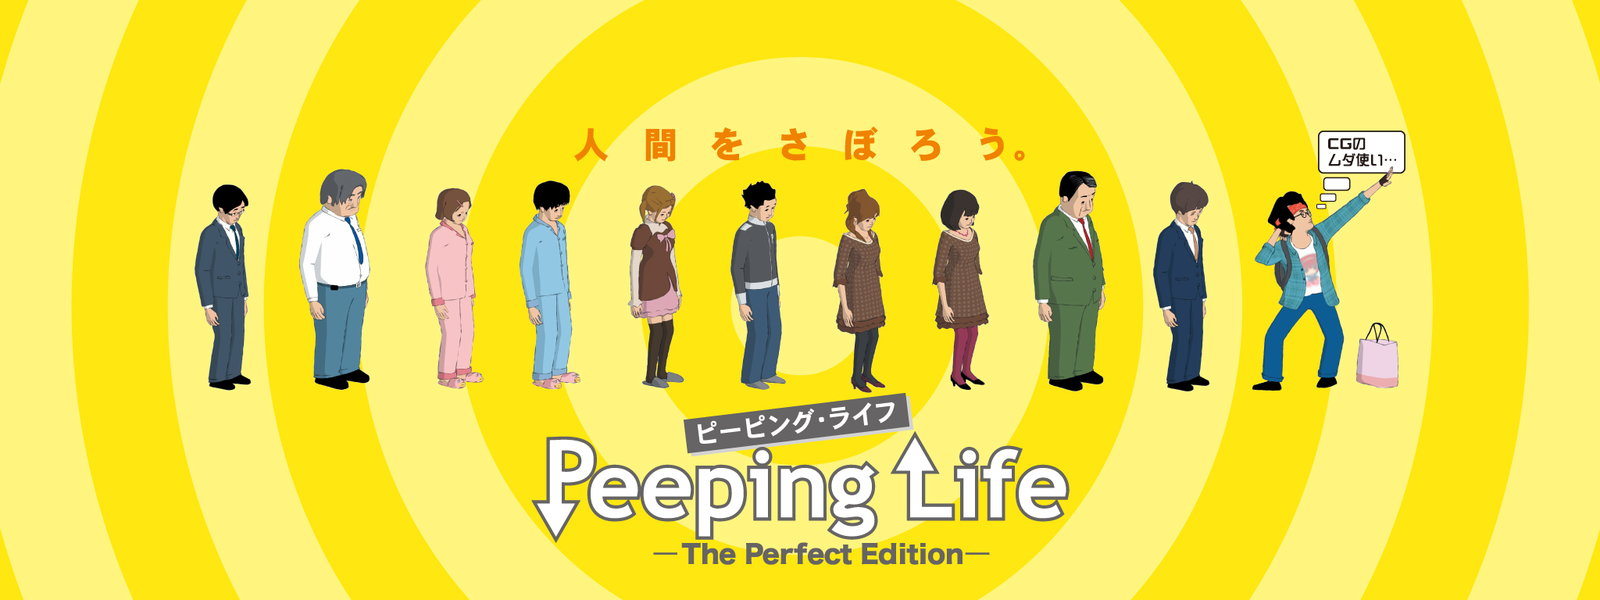 Peeping Life (ピーピング・ライフ) -The Perfect Edition- イエロー盤の動画 - Peeping Lifex (ピーピング・ライフ) 怪獣酒場 かいじゅうたちがいるところ